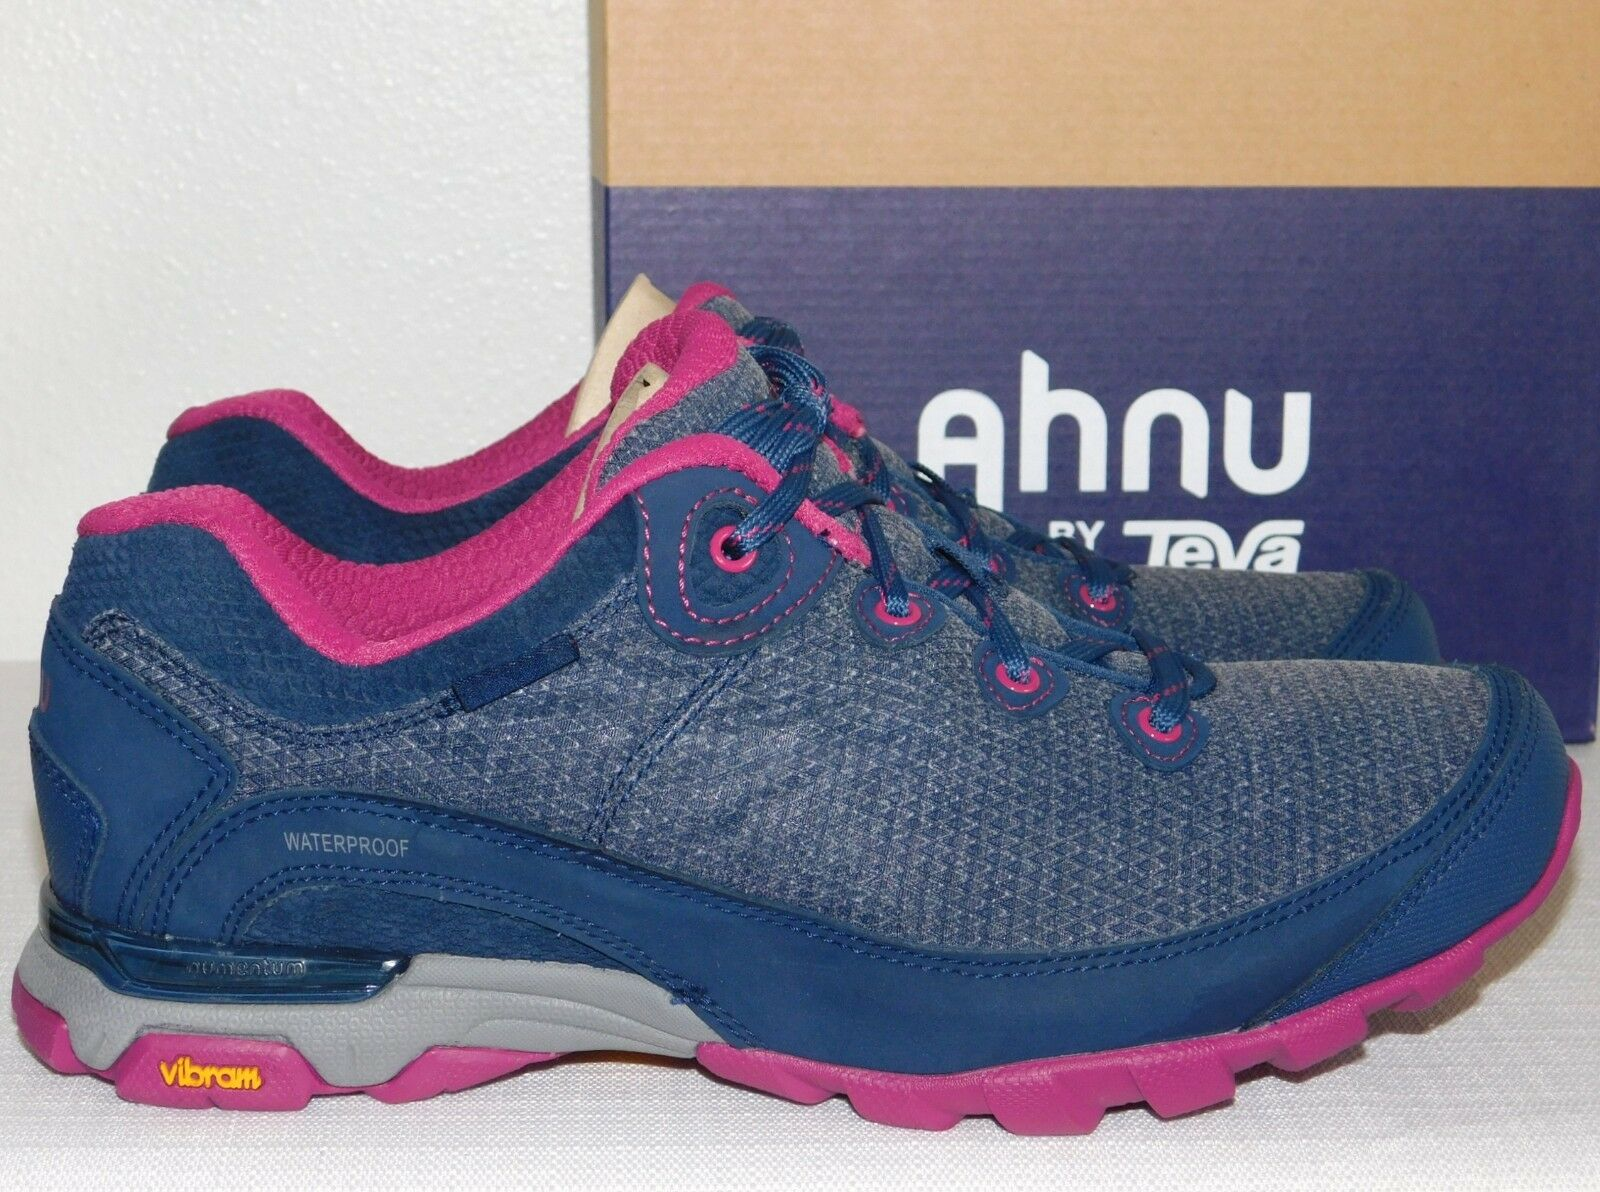 NEW NIB WOMENS INSIGINIA blueE SZ 9.5 AHNU BY TEVA SUGARPINE II WP HIKING SHOES